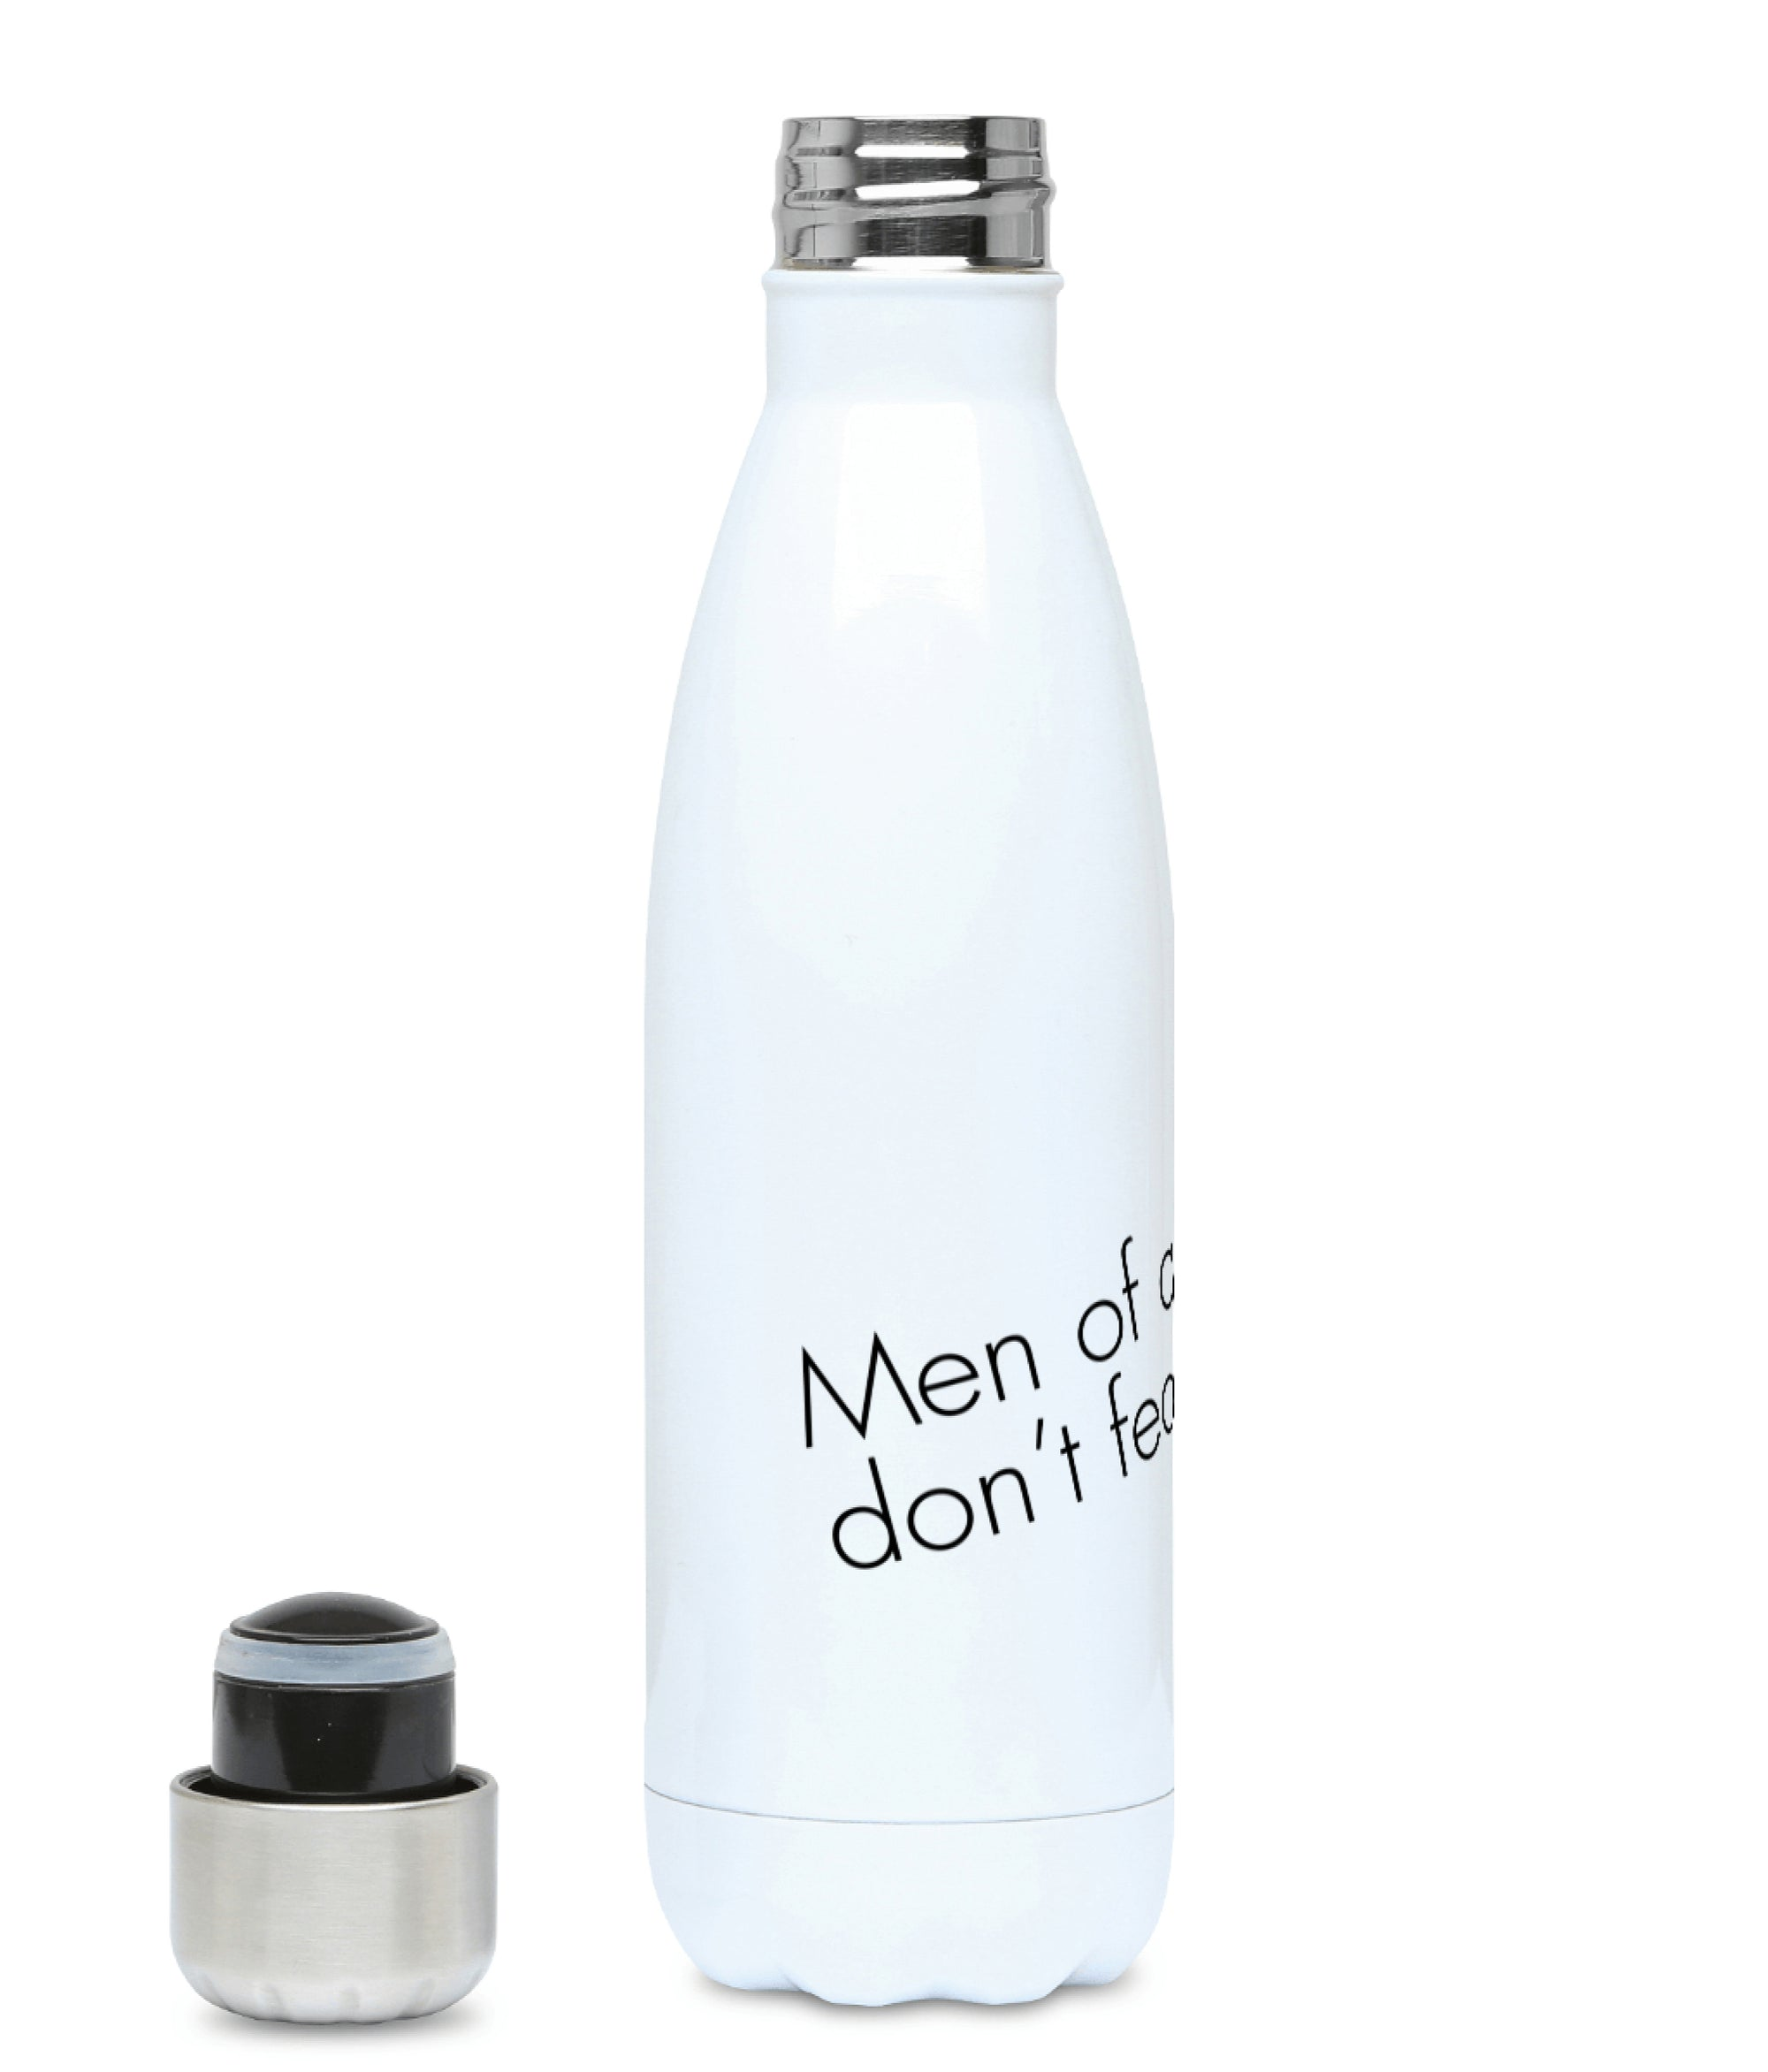 Feminist Water Bottle - Men Of Quality Don't Fear Equality - Front